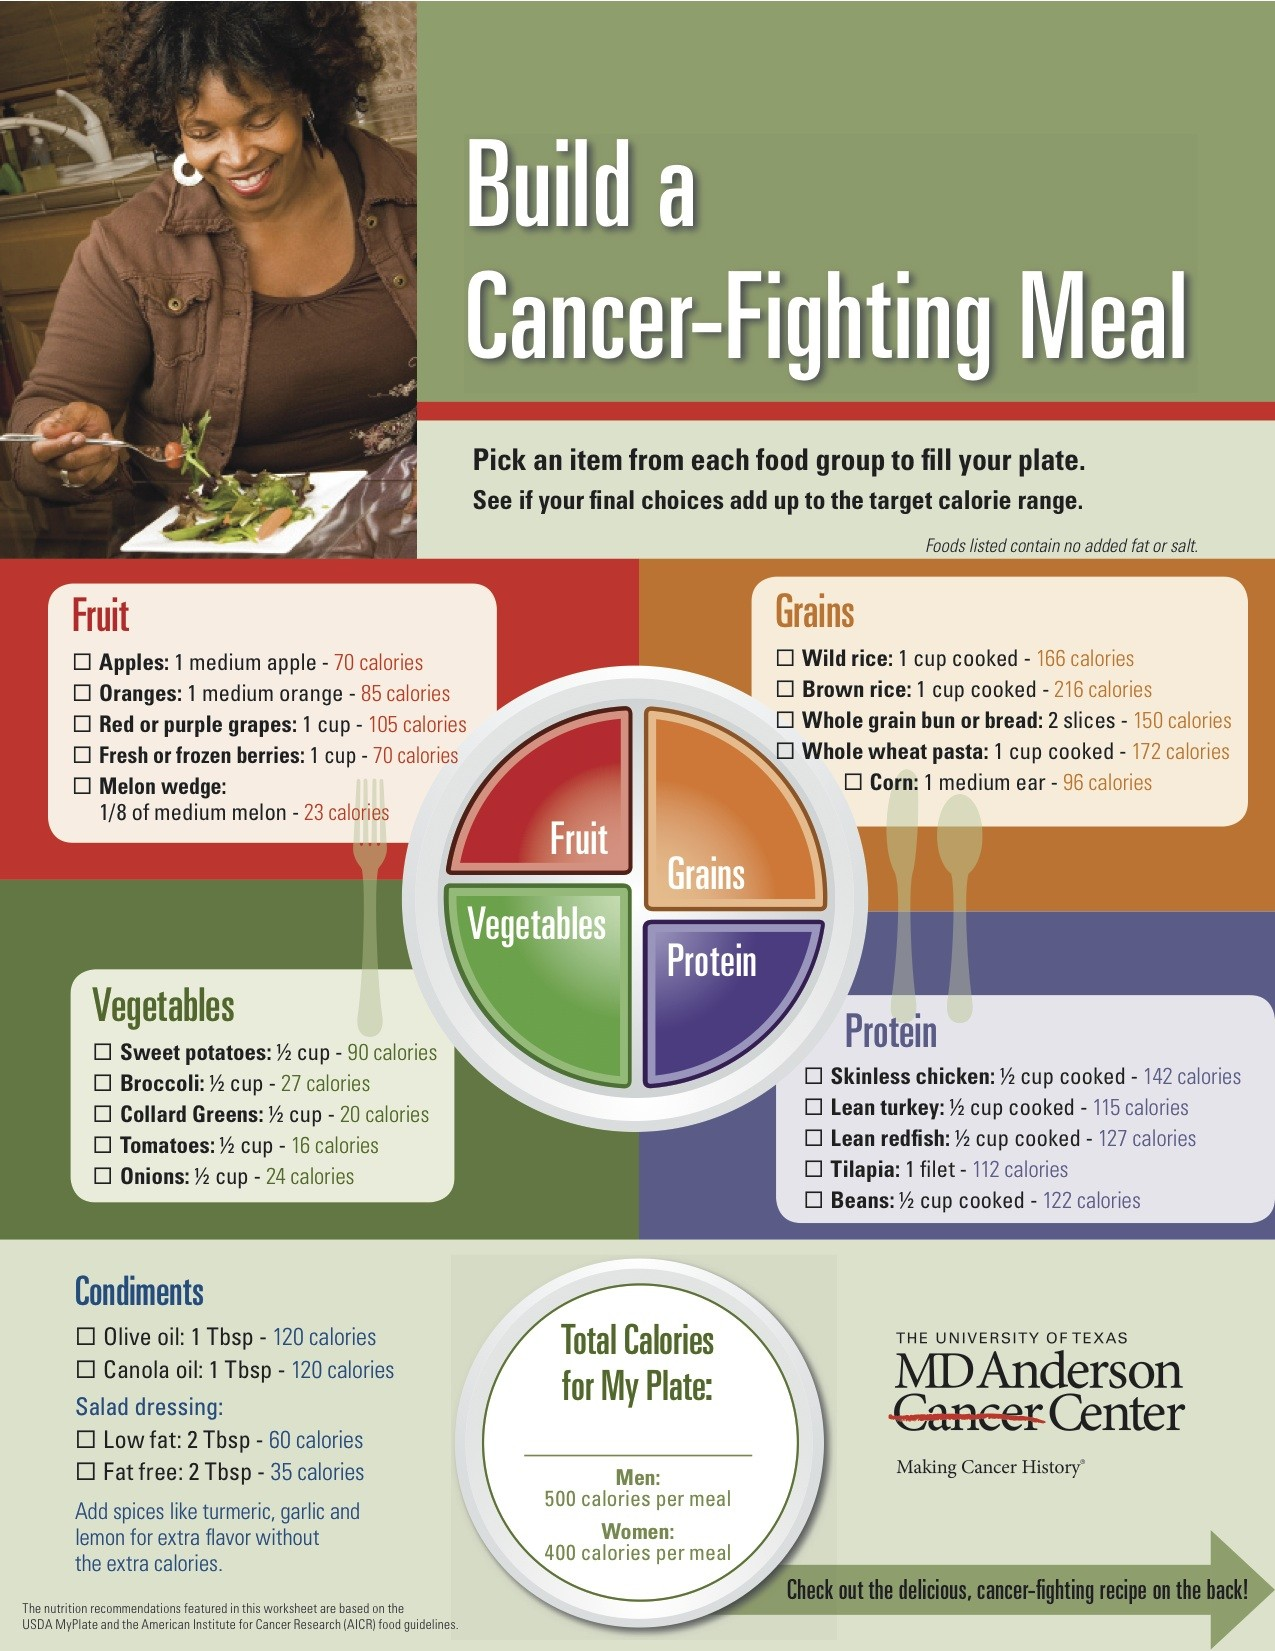 Cancer Survivors Often Have Poor Diets, Affecting their